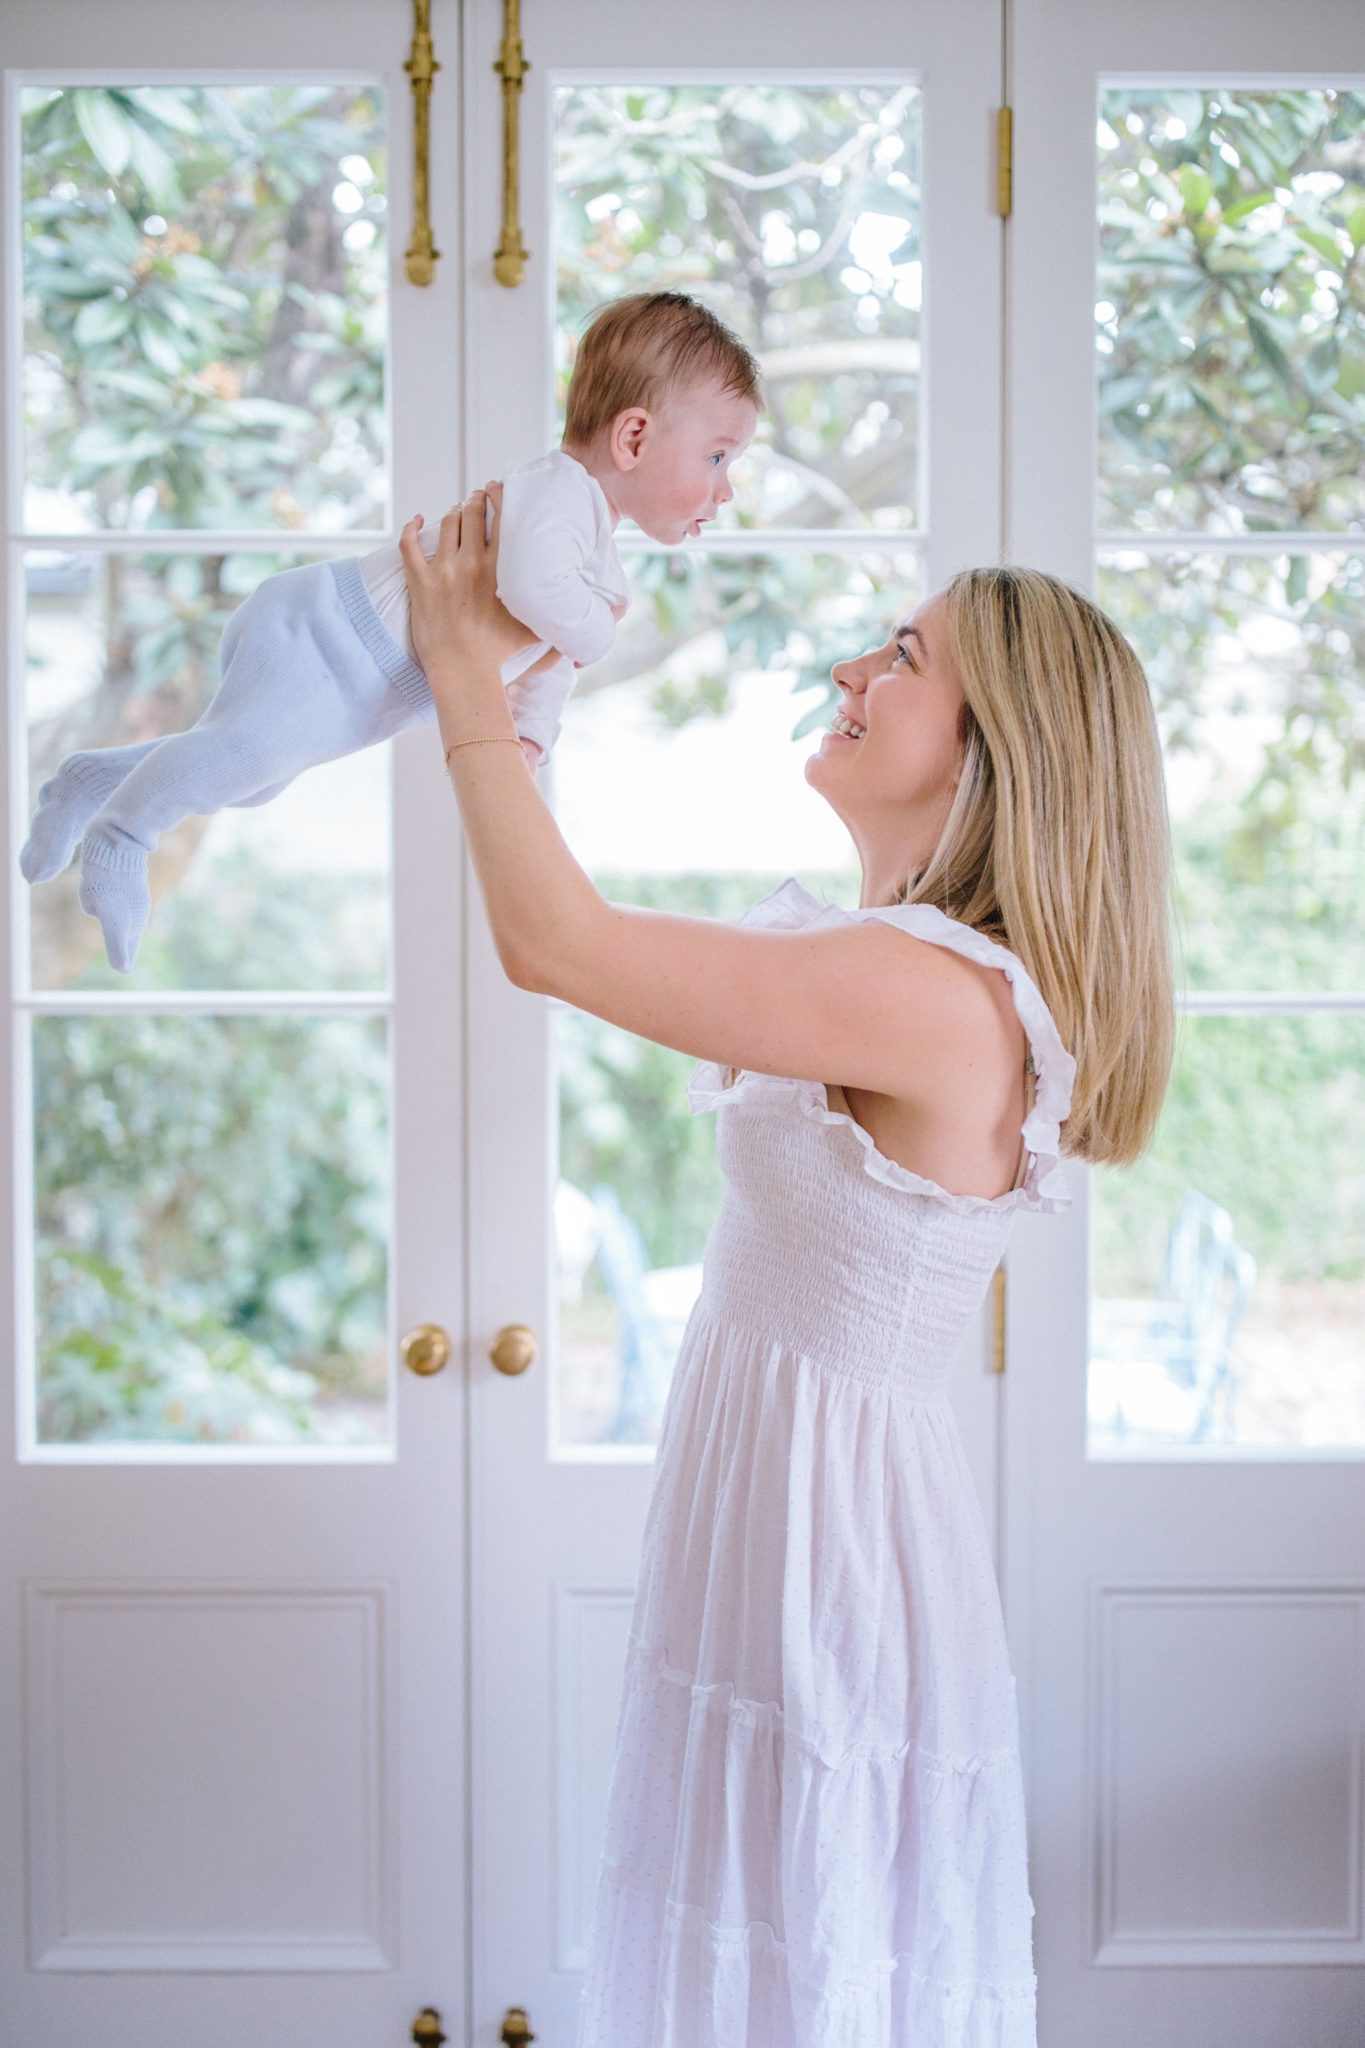 Best tips for new moms | Rhyme & Reason